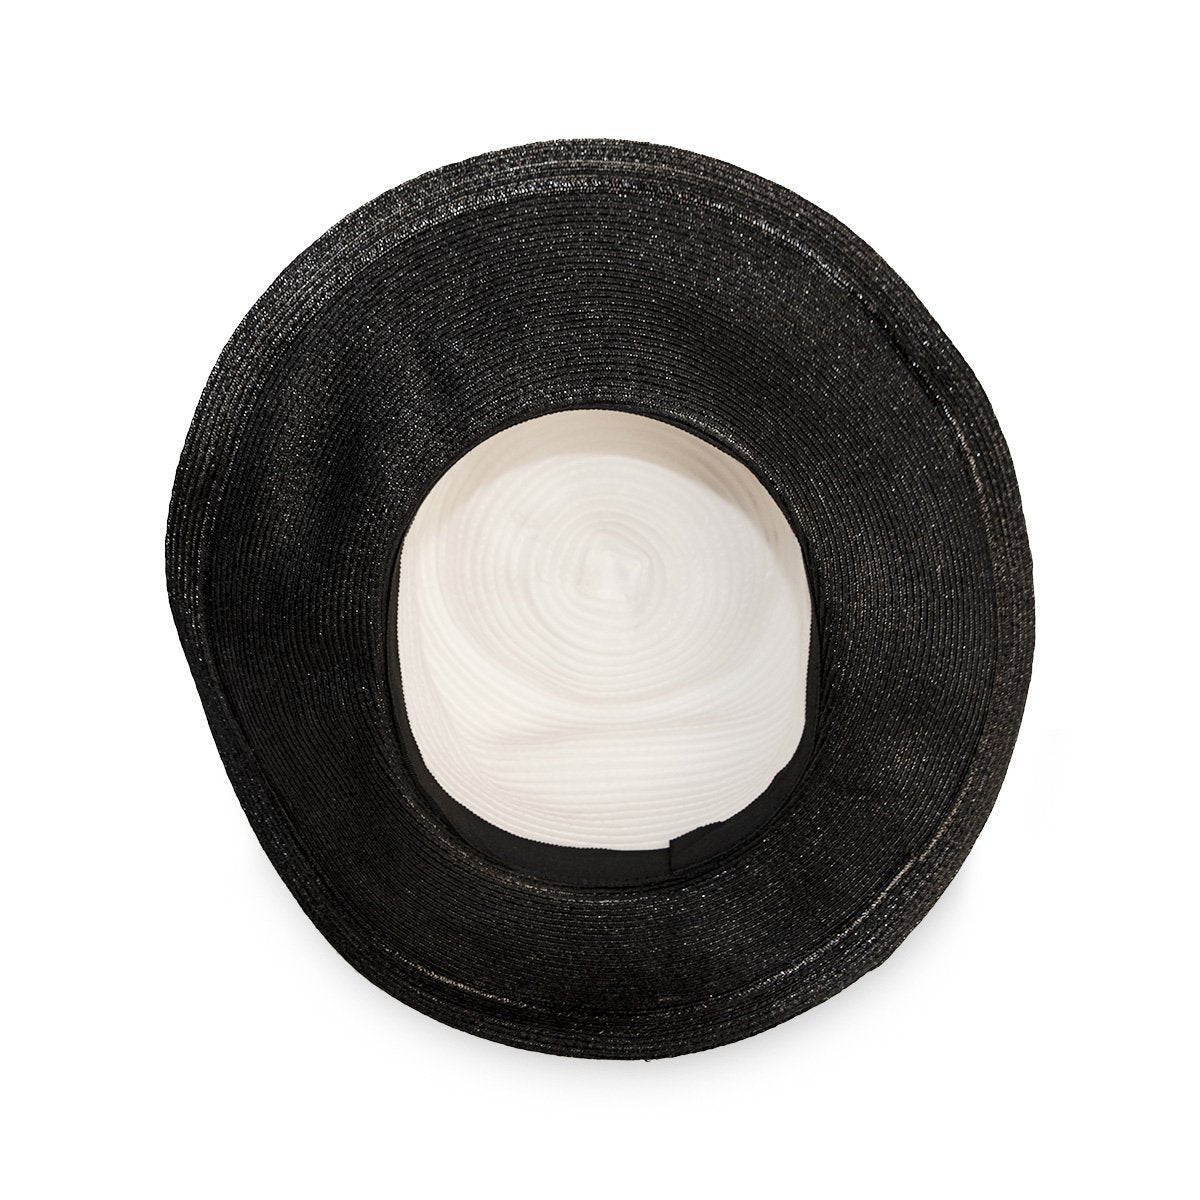 Straw and Silk Chiffon Hat in Black & White 6